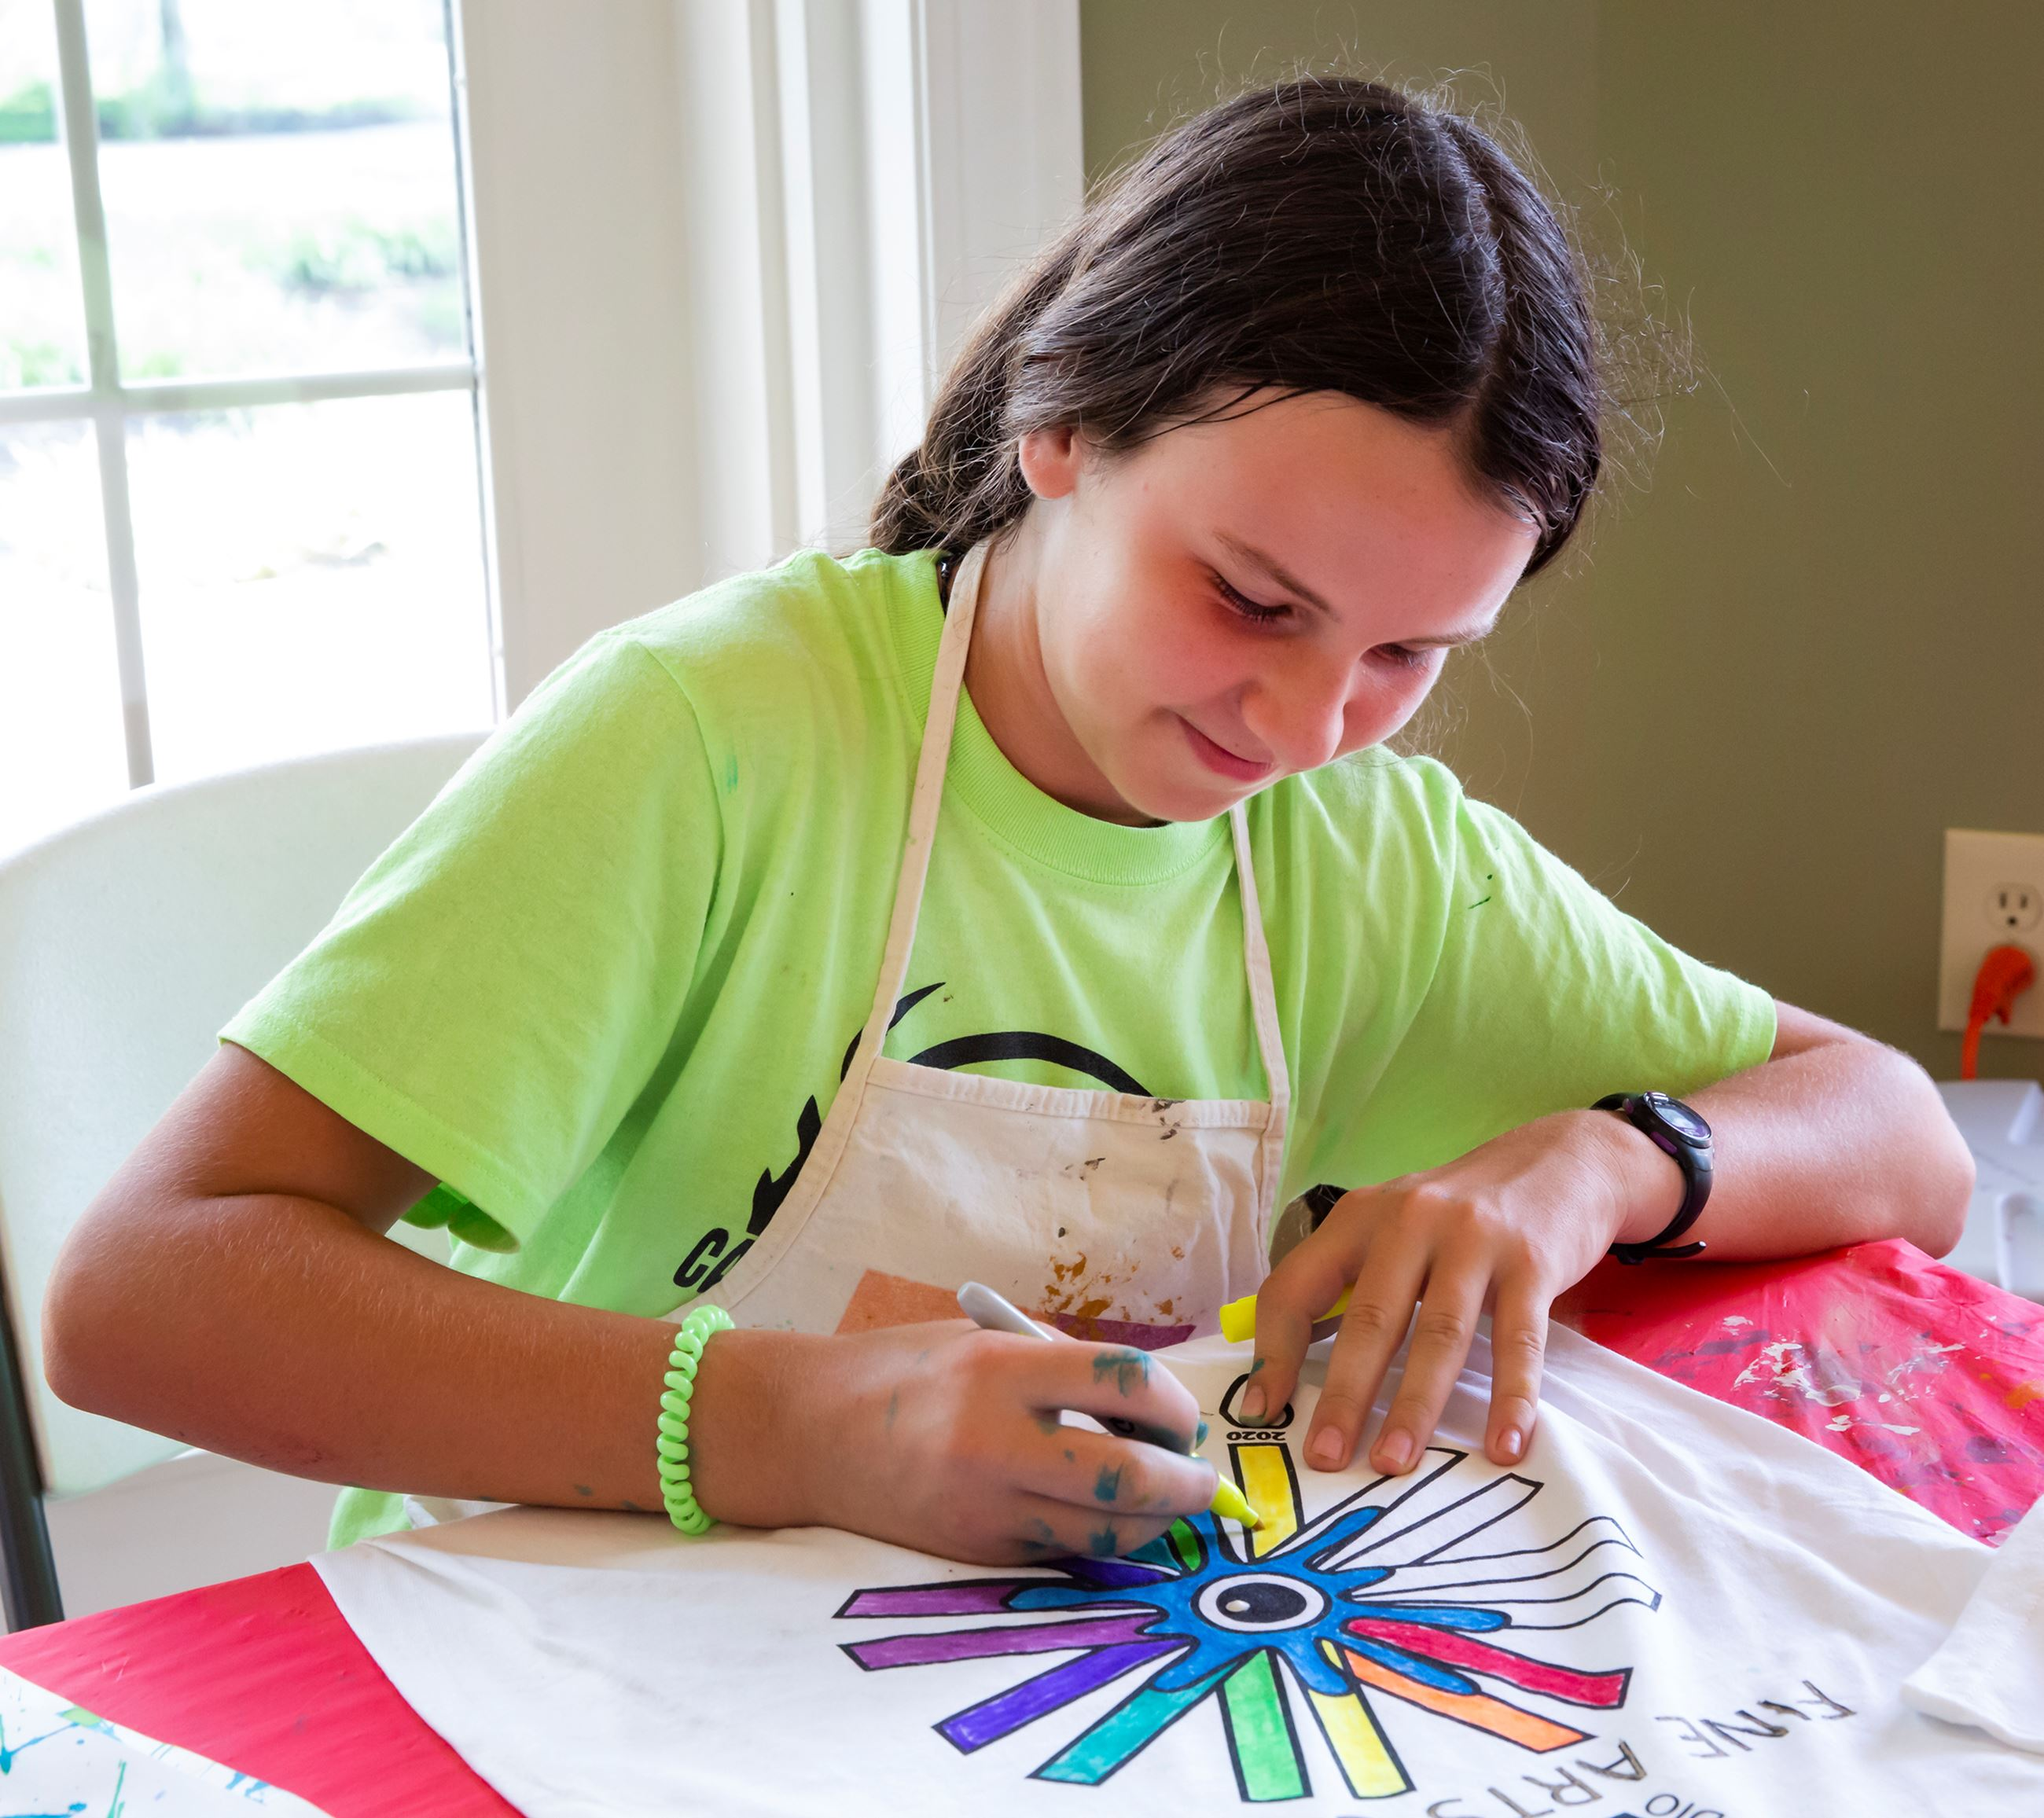 Girl Painting Fine Arts Camp T-shirt